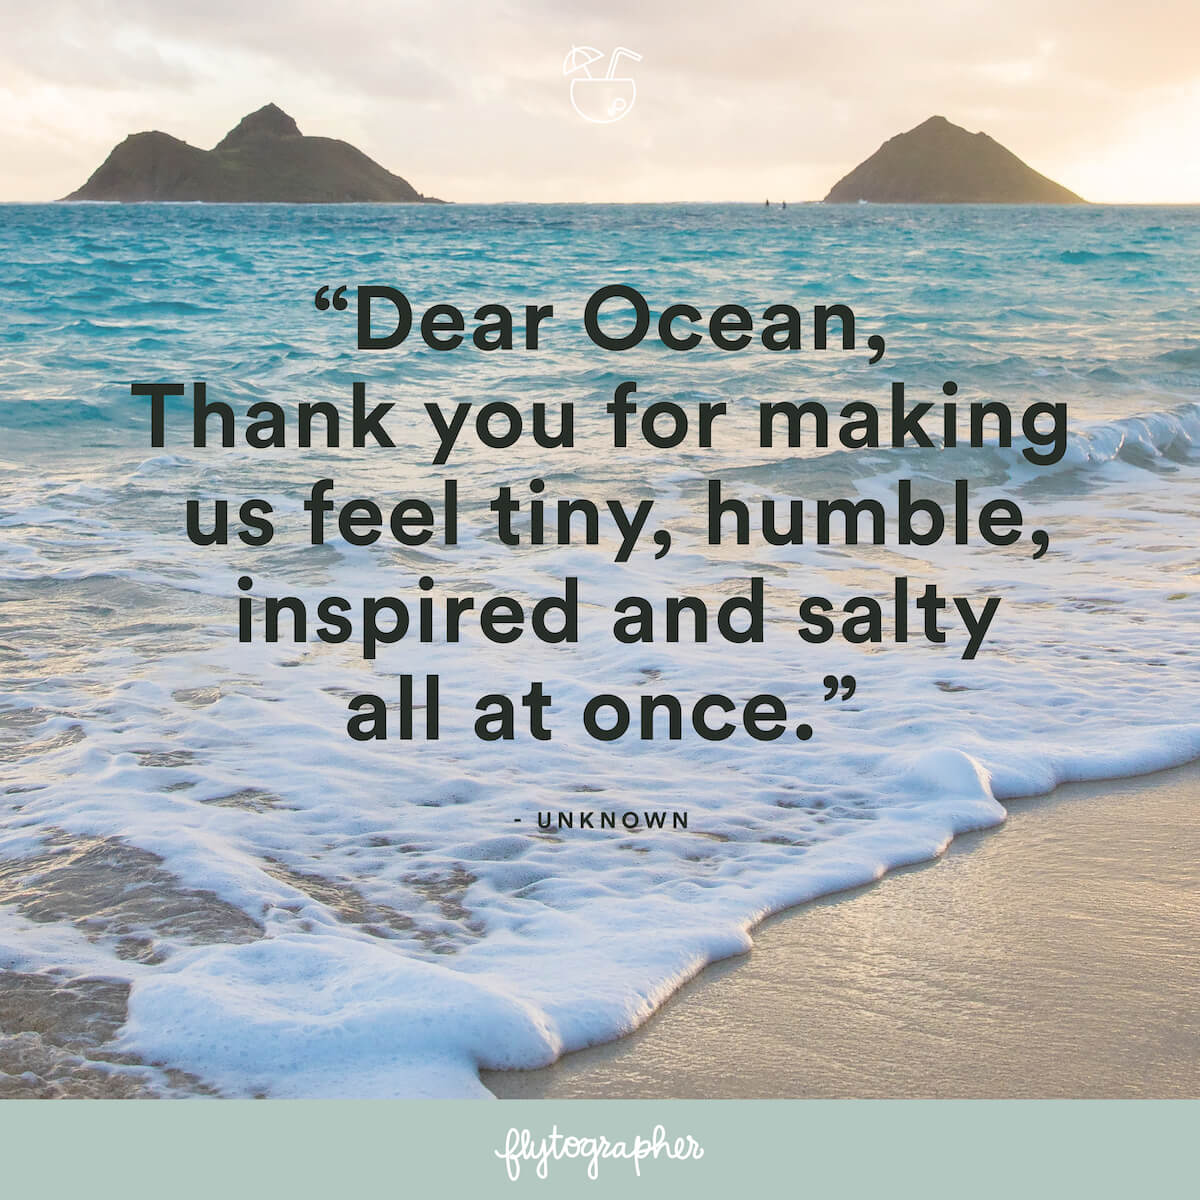 "Travel quote: ""Dear Ocean, Thank you for making us feel tiny, humble, inspired and salty all at once."" - Unknown"